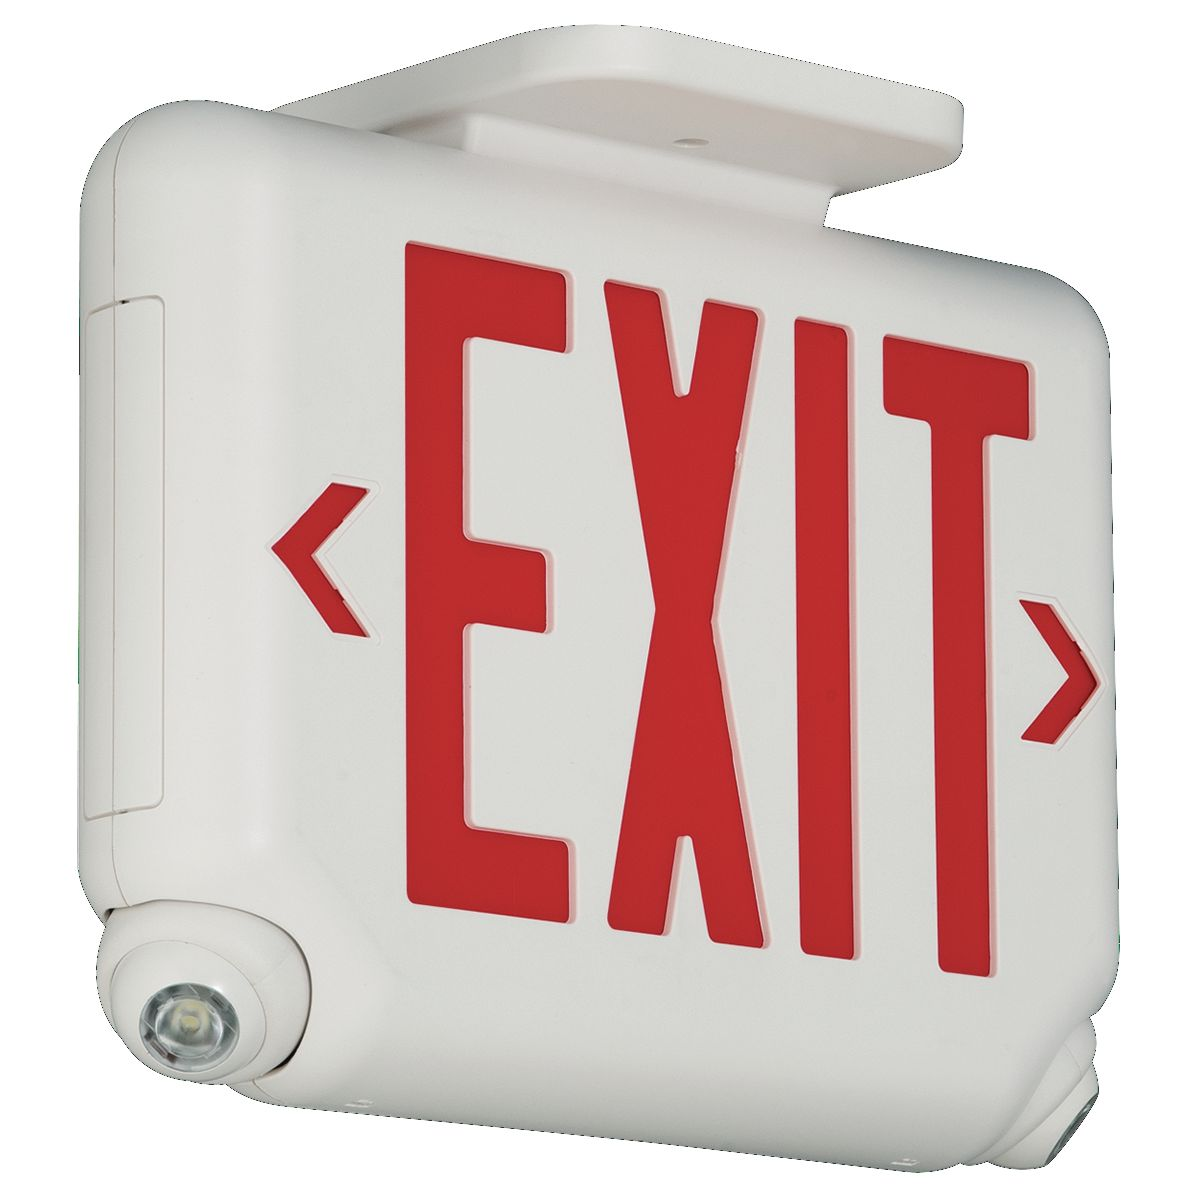 EVCURW DUAL LITE ARCHITECTURAL LED COMBINATION EXIT/EMERGENCY LIGHT, UNIVERSAL FACE, RED LETTER COLOR, WHITE FINISH.